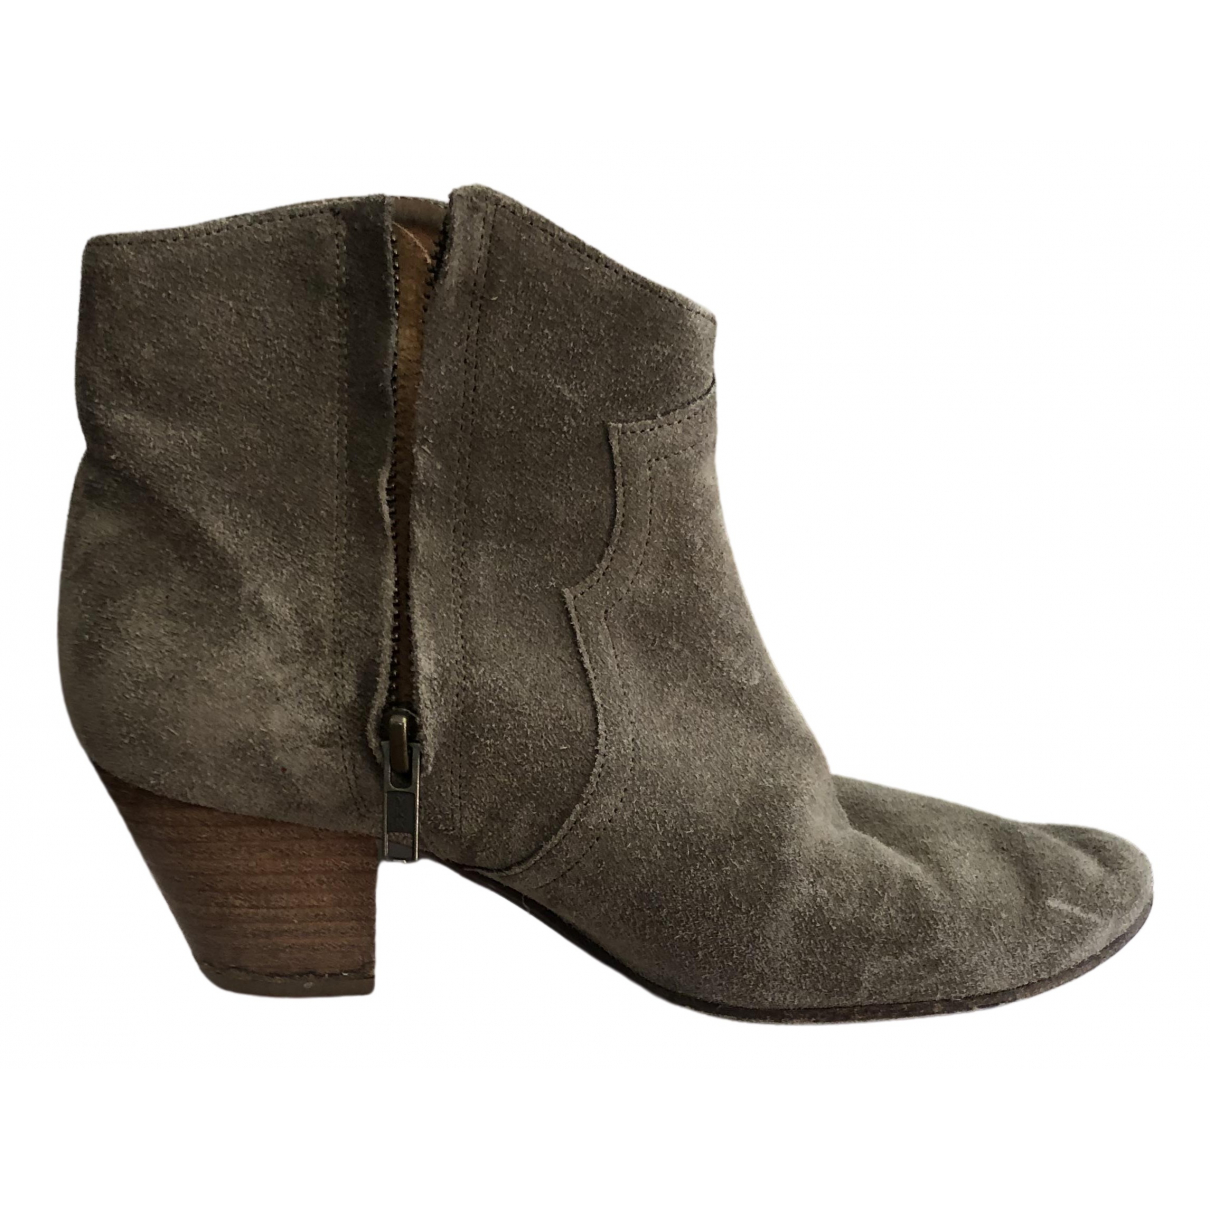 Isabel Marant Dicker Grey Suede Ankle boots for Women 37 EU